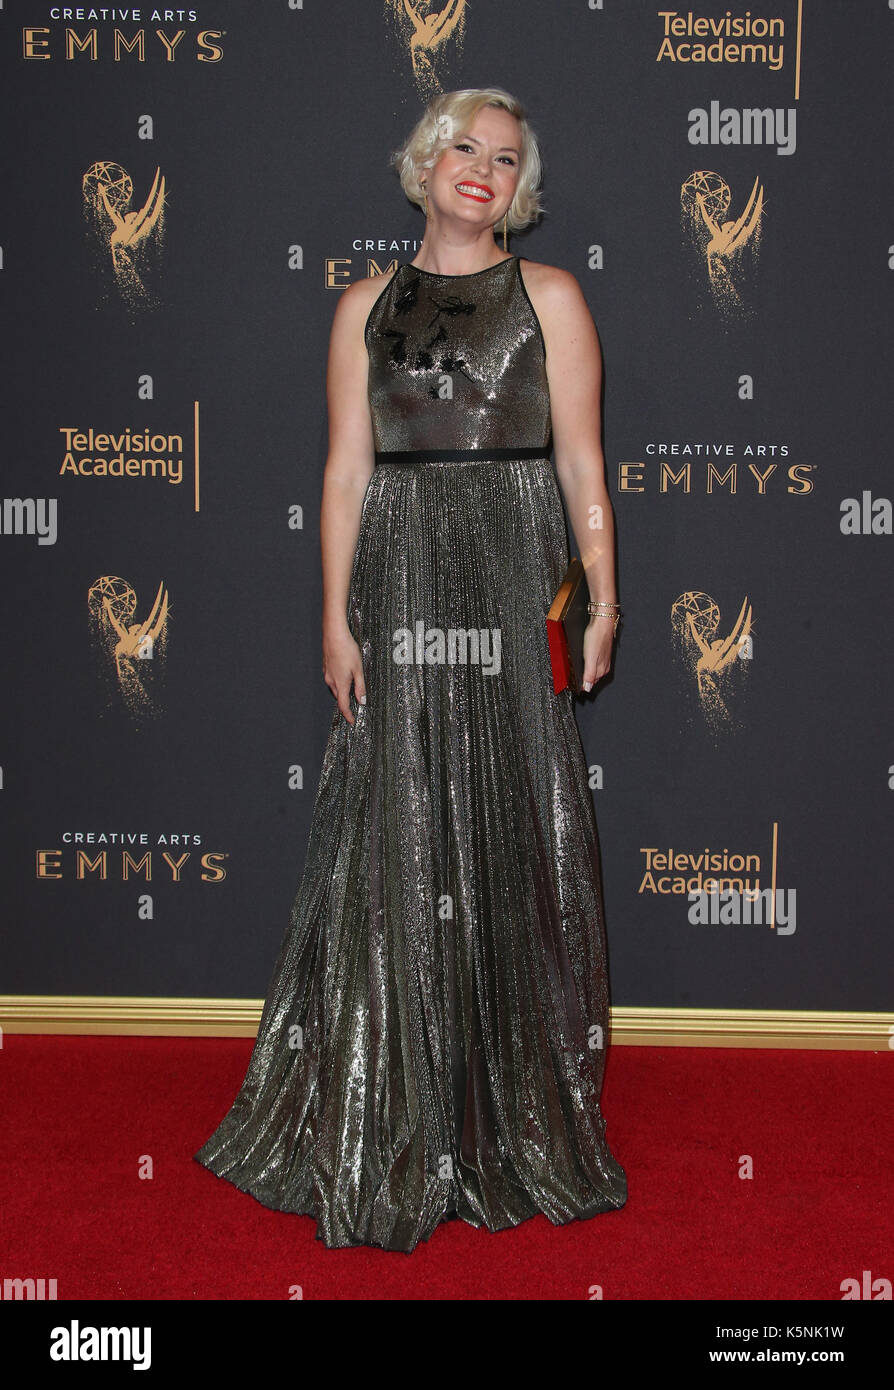 Watch Kimmy gatewood creative arts emmy awards in los angeles video